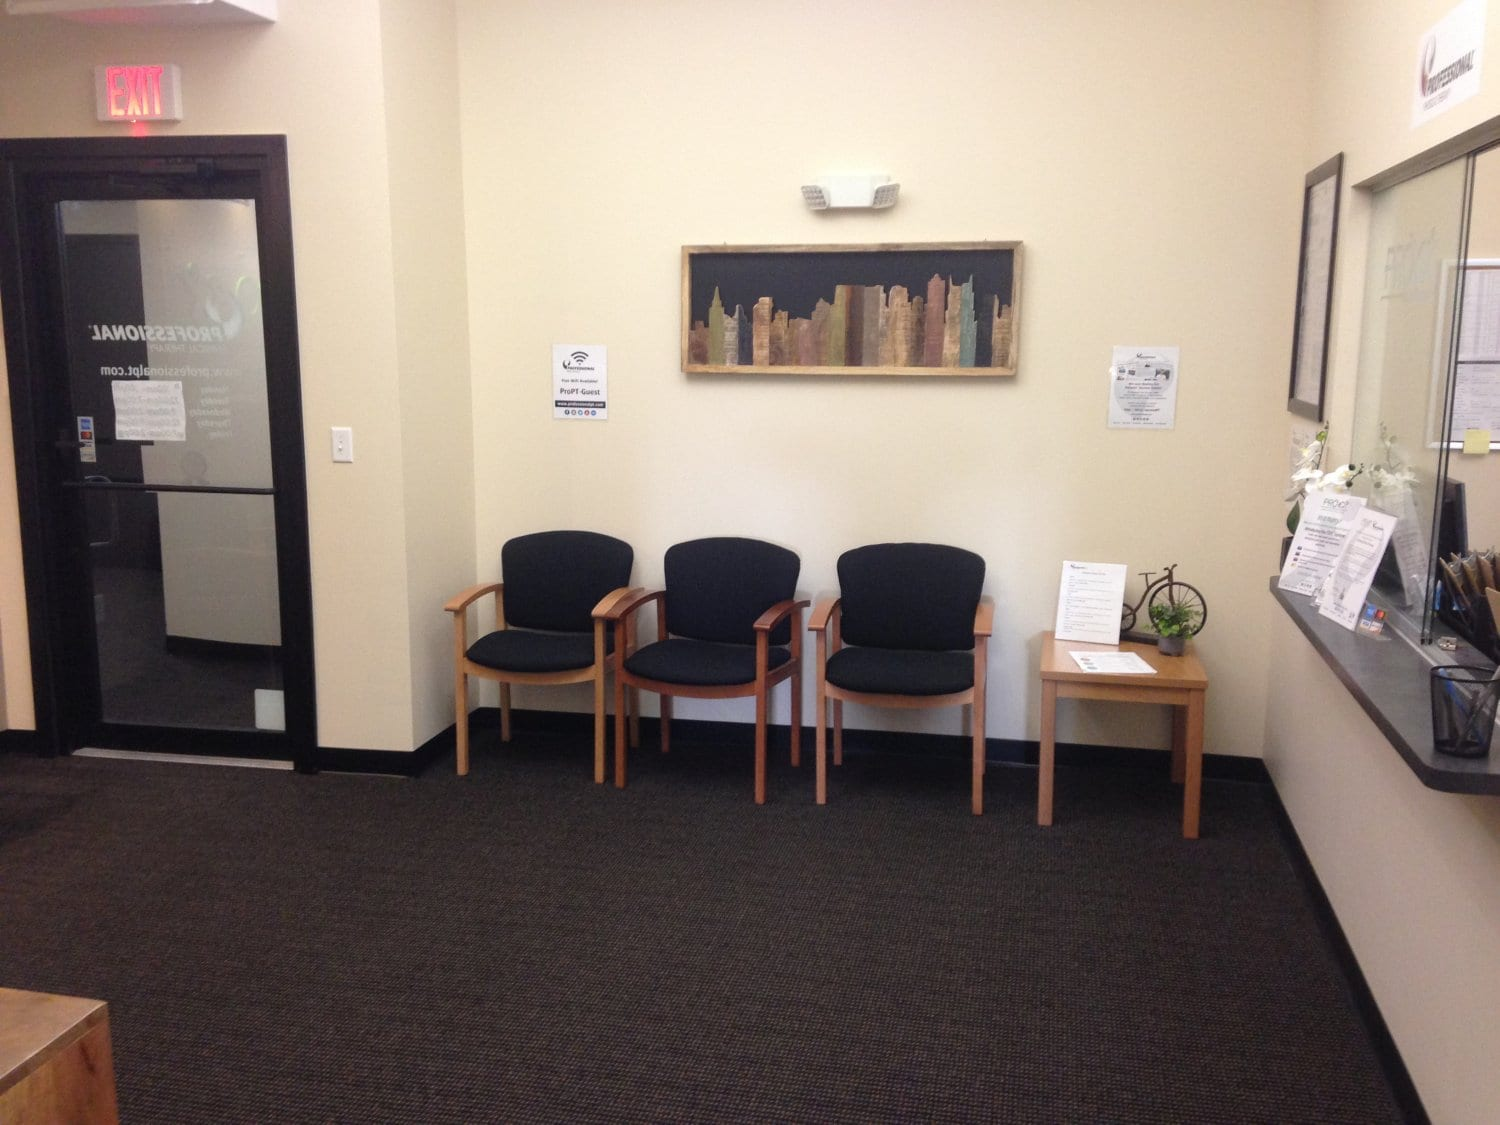 This is an image of the other part of our waiting area in our physical therapy clinic in Watertown, Massachusetts.